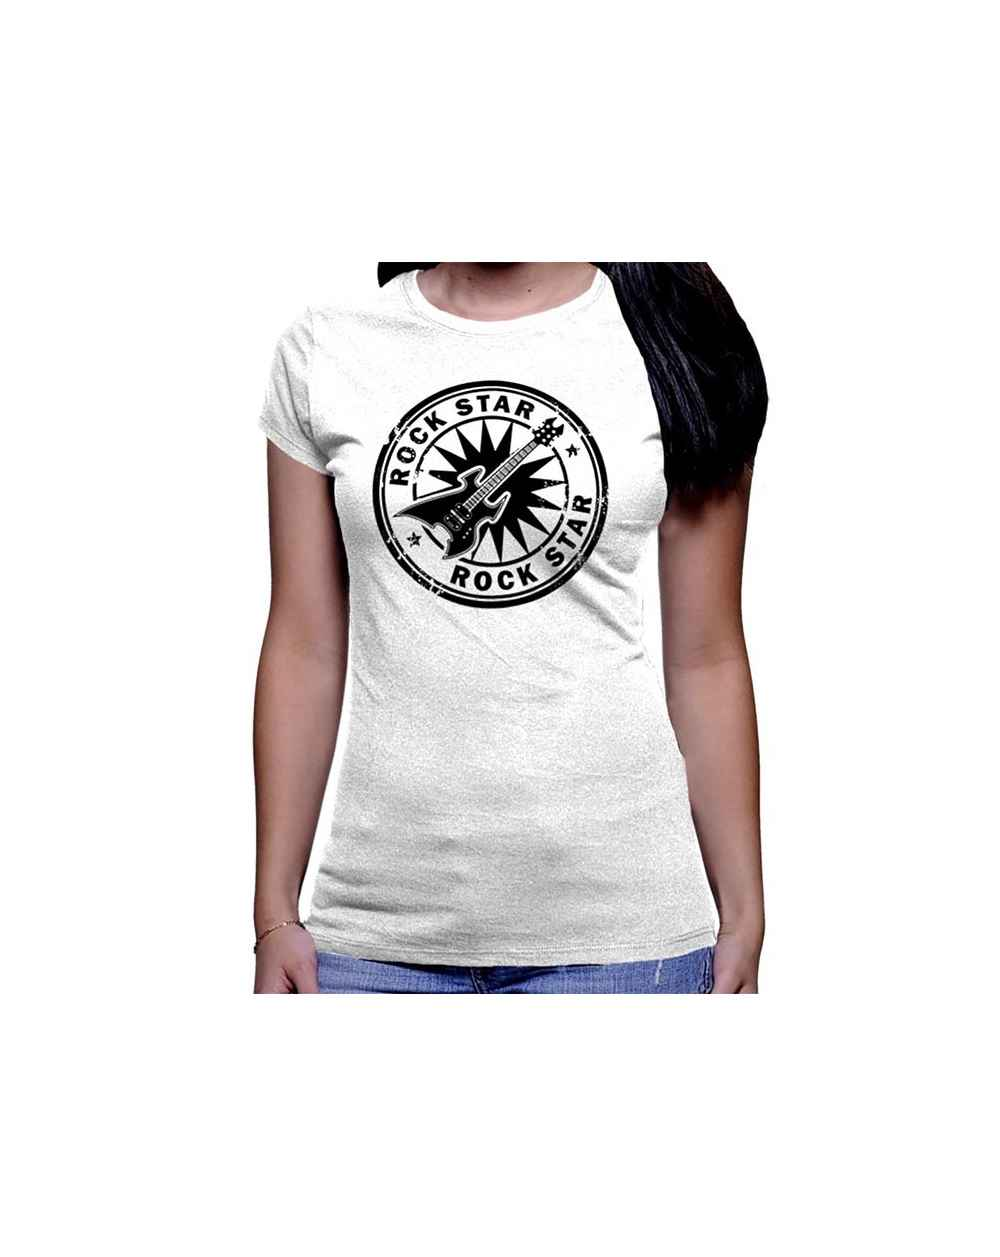 Camiseta Estampada Dama Rock Star